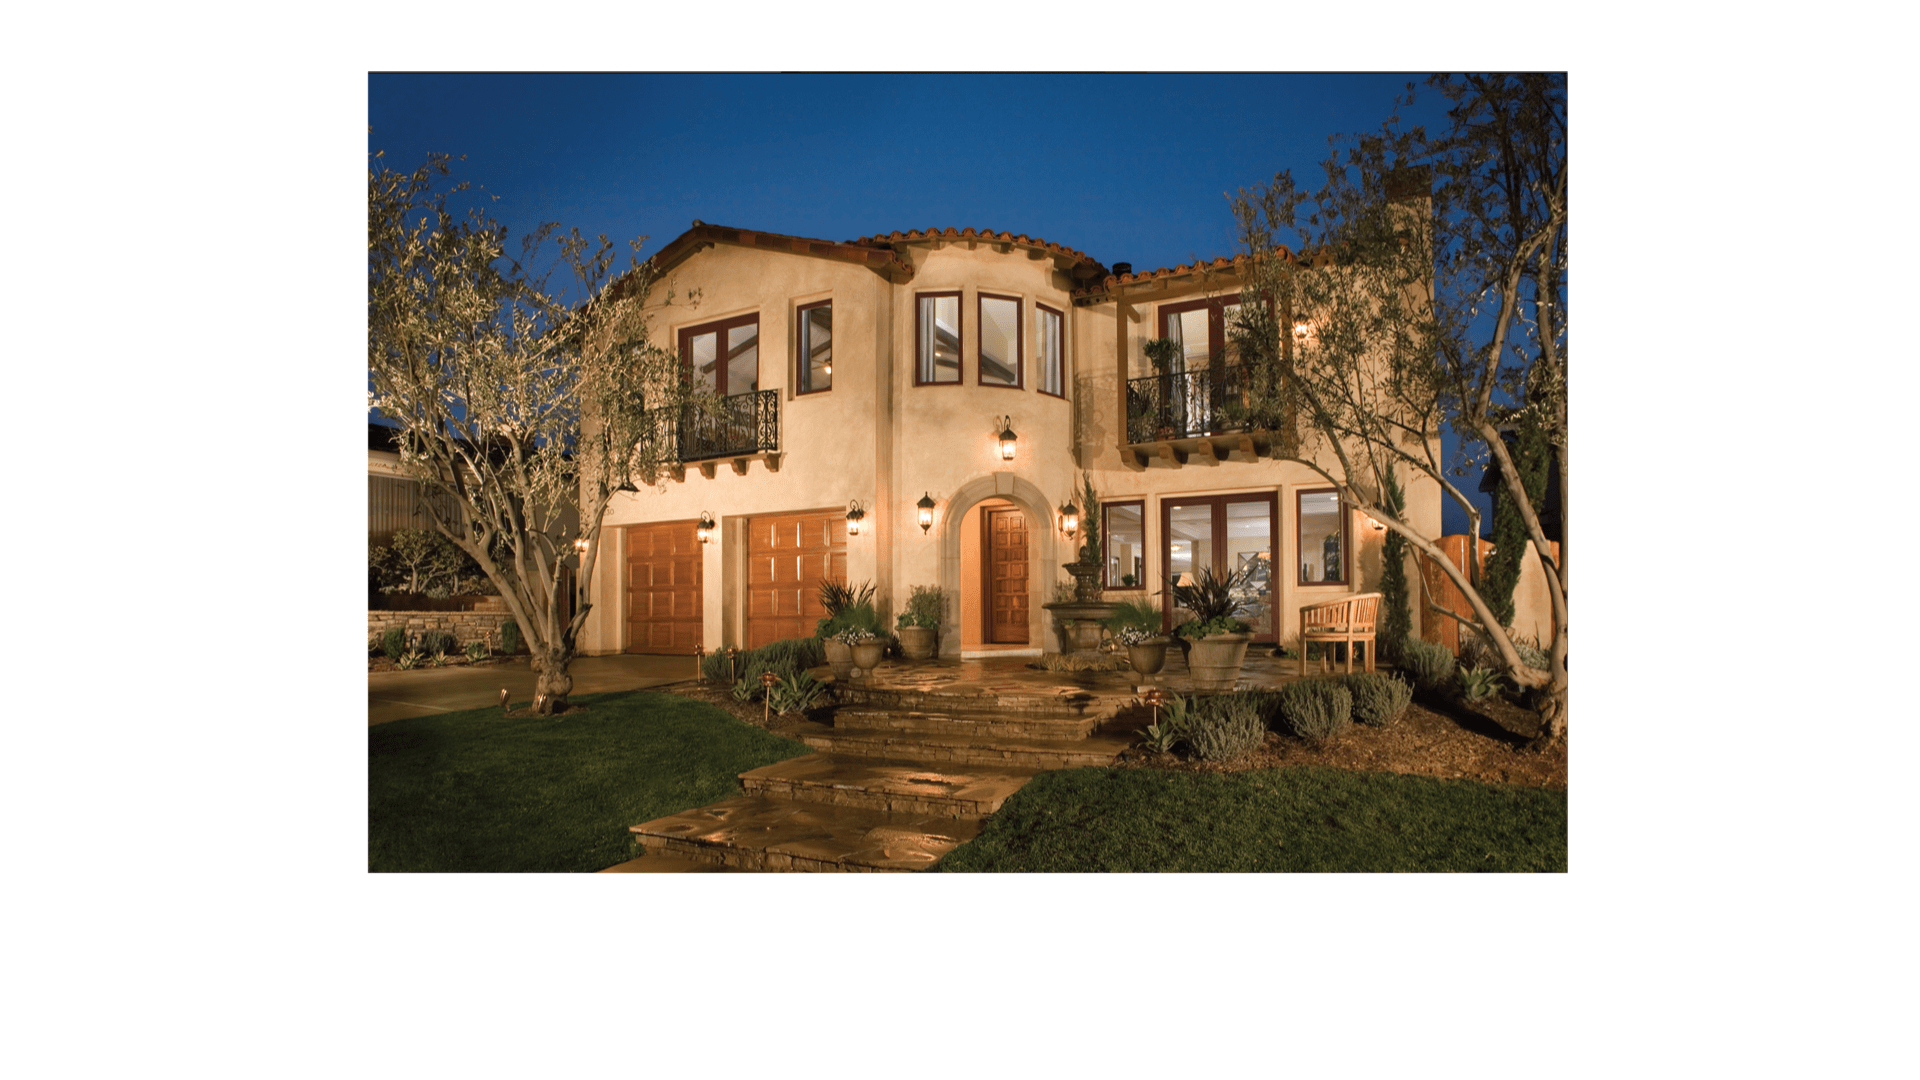 Why Milgard Windows for your Home or Remodel Project